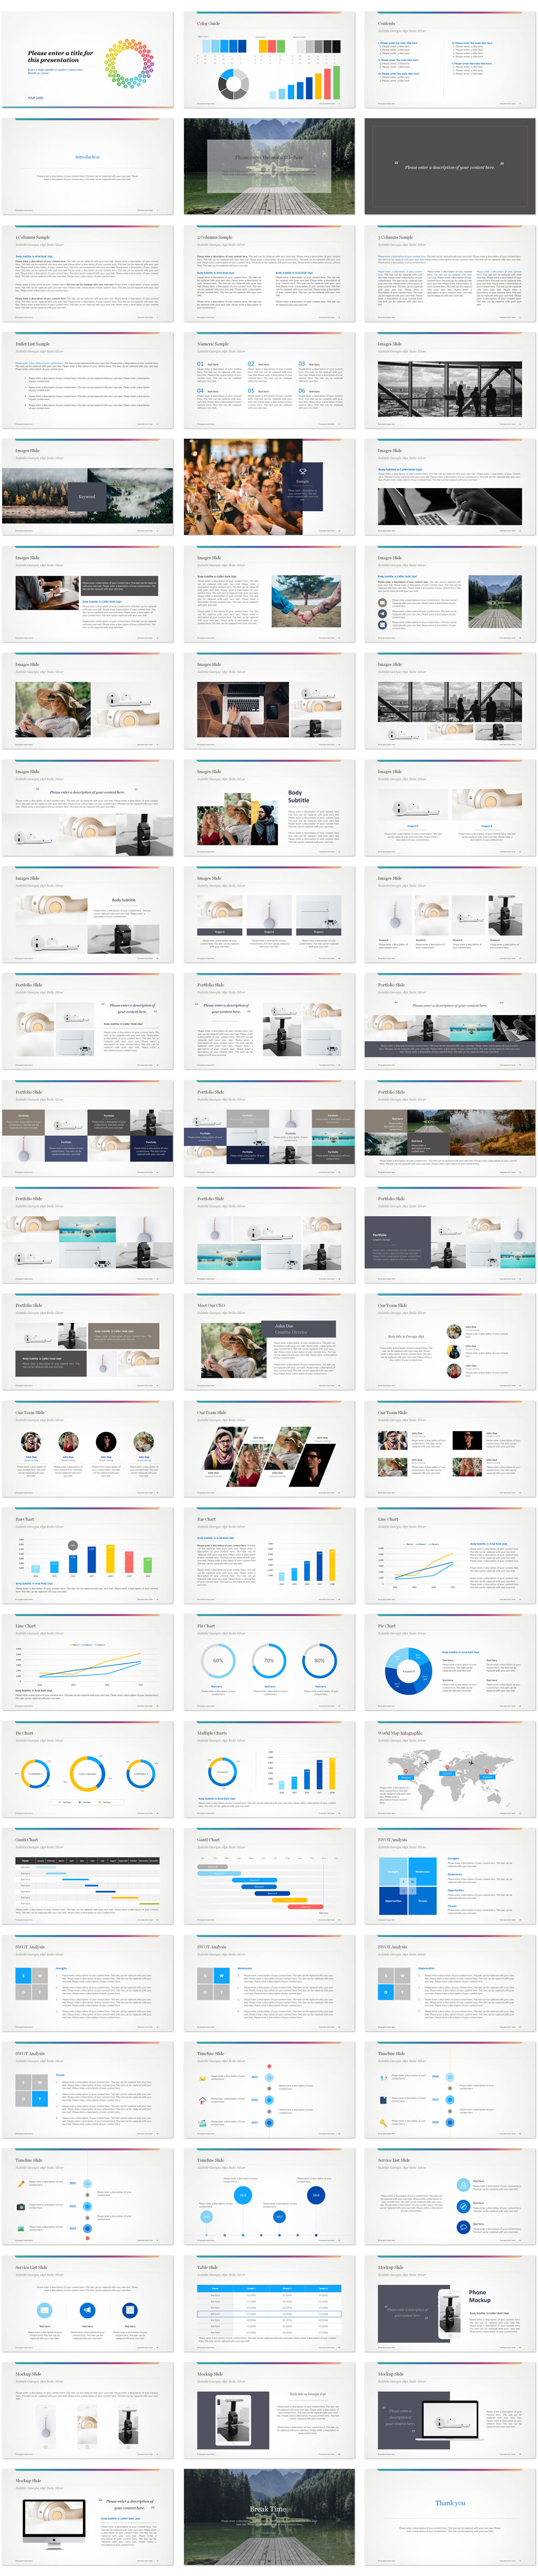 Social PowerPoint Templates